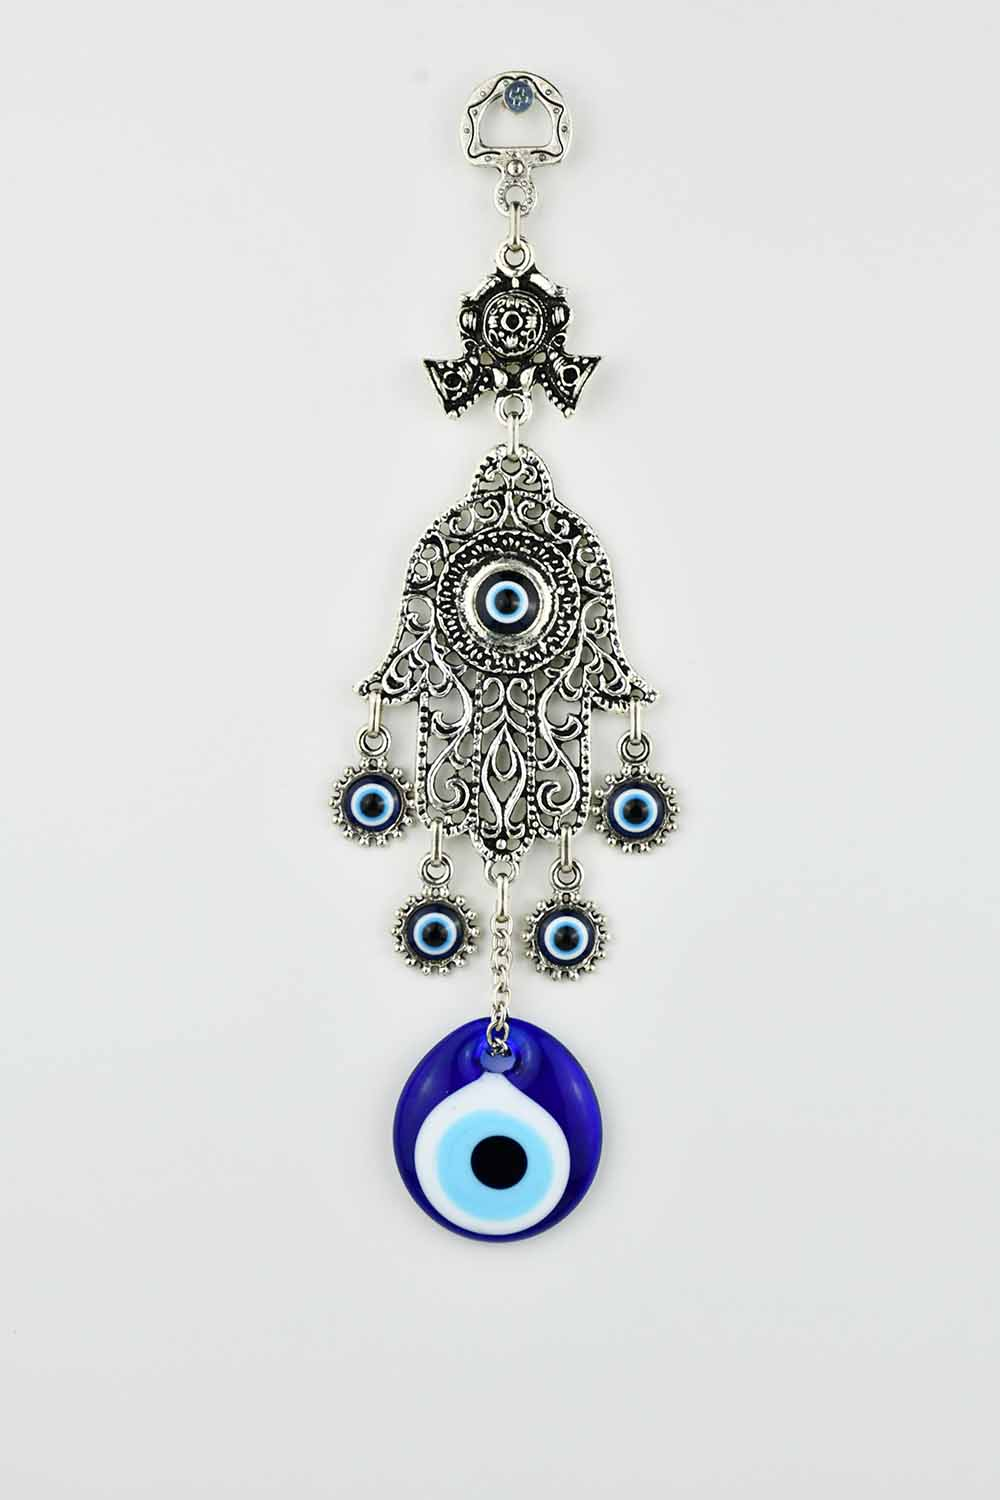 Evil Eye and Hamsa Hand Ornament Vintag Design.